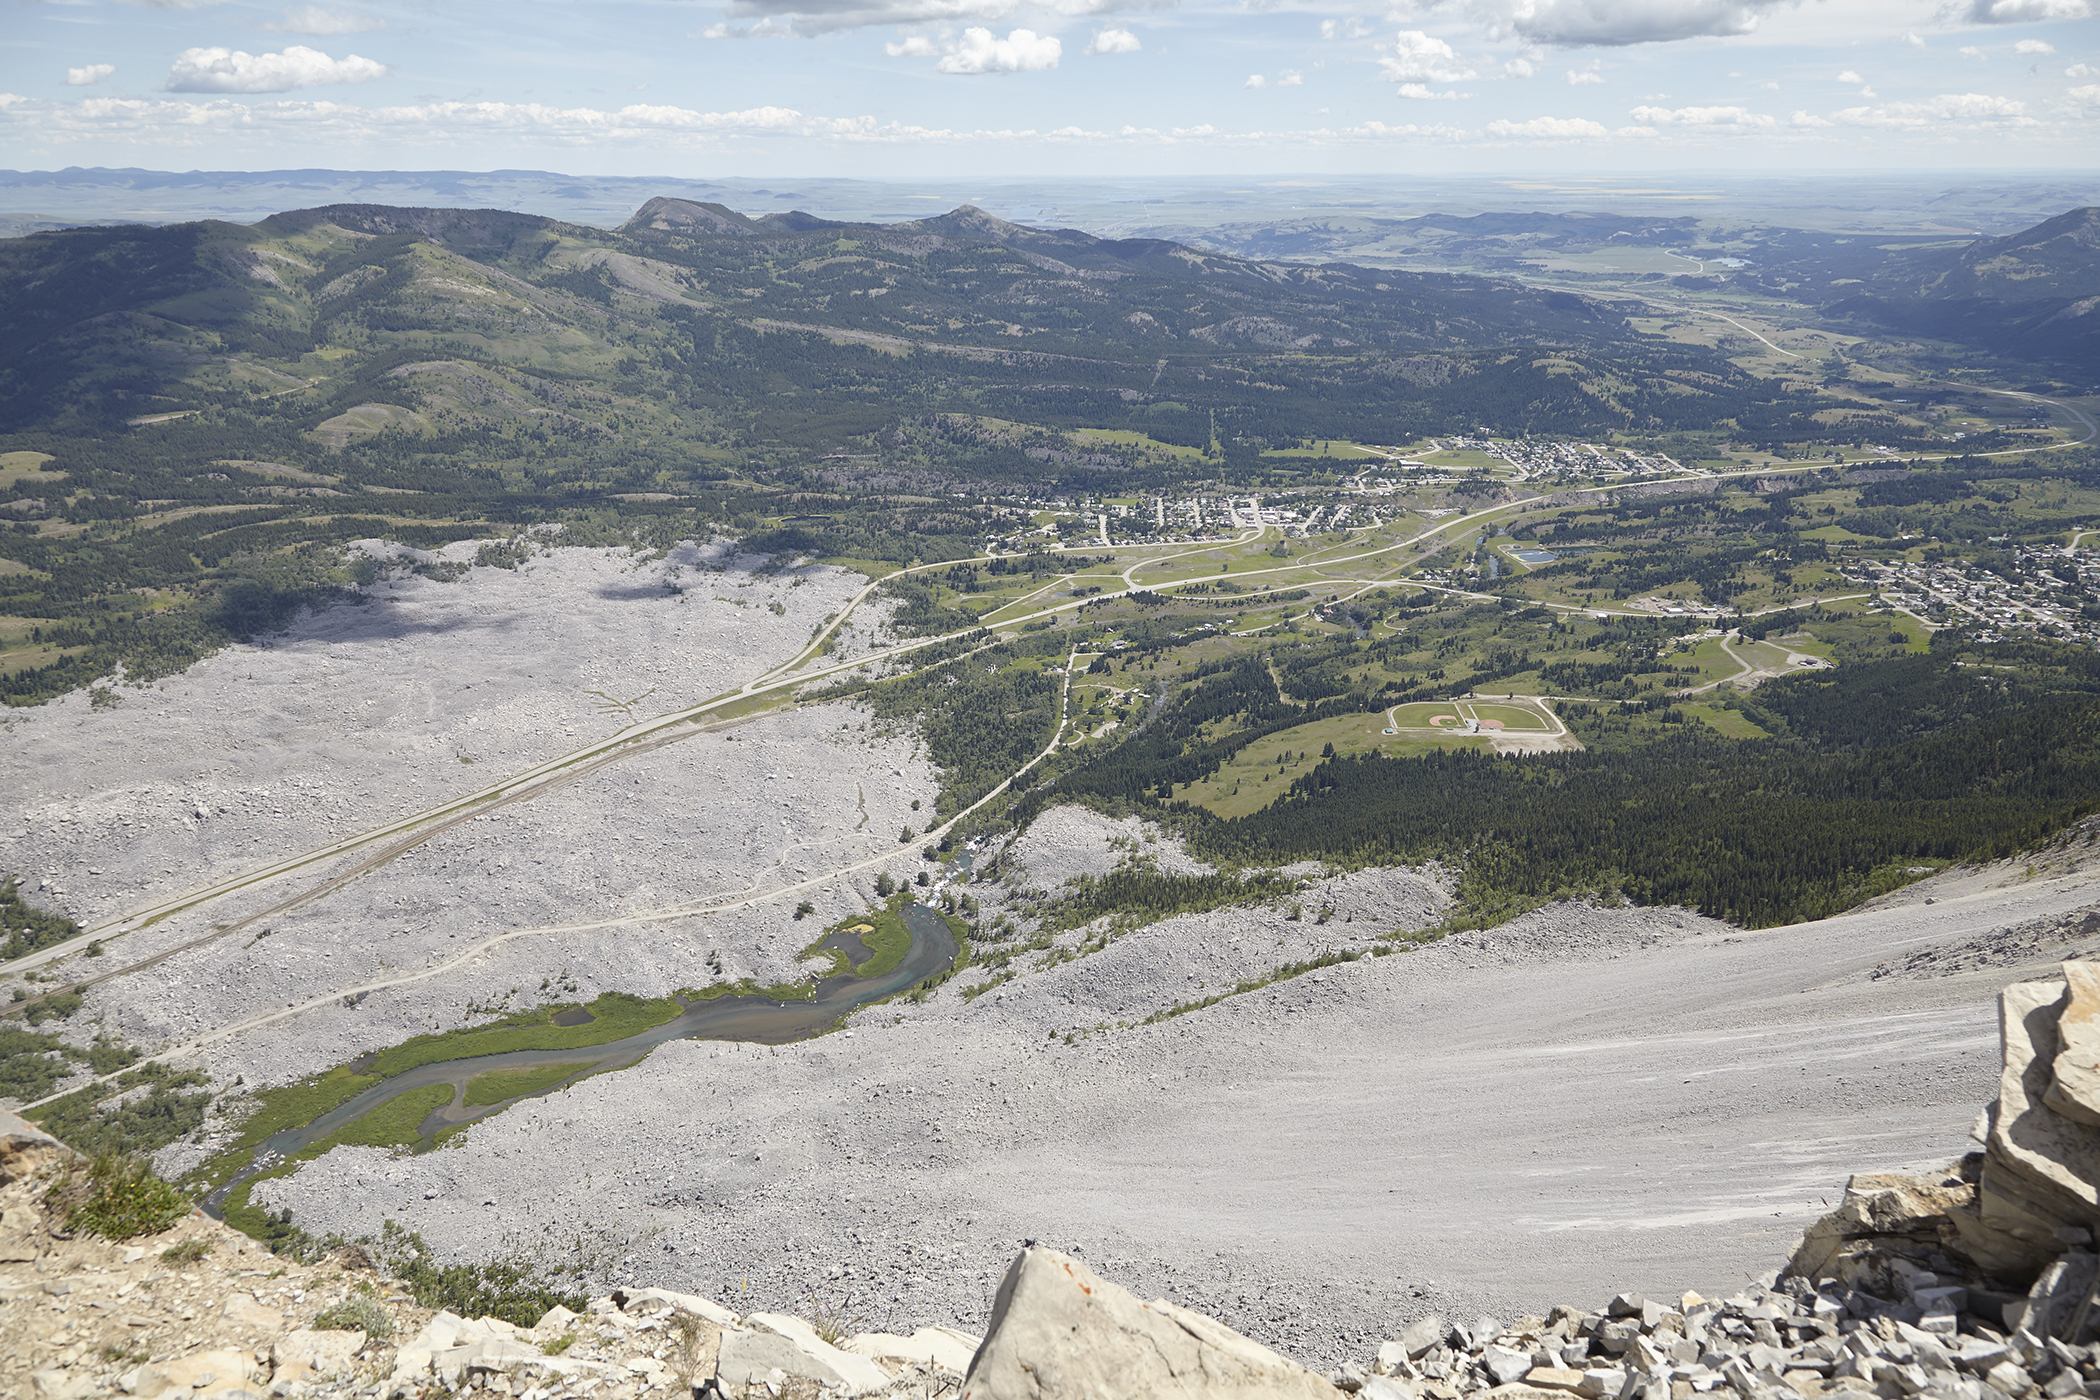 A bird's eye view of the infamous Frank Slide.